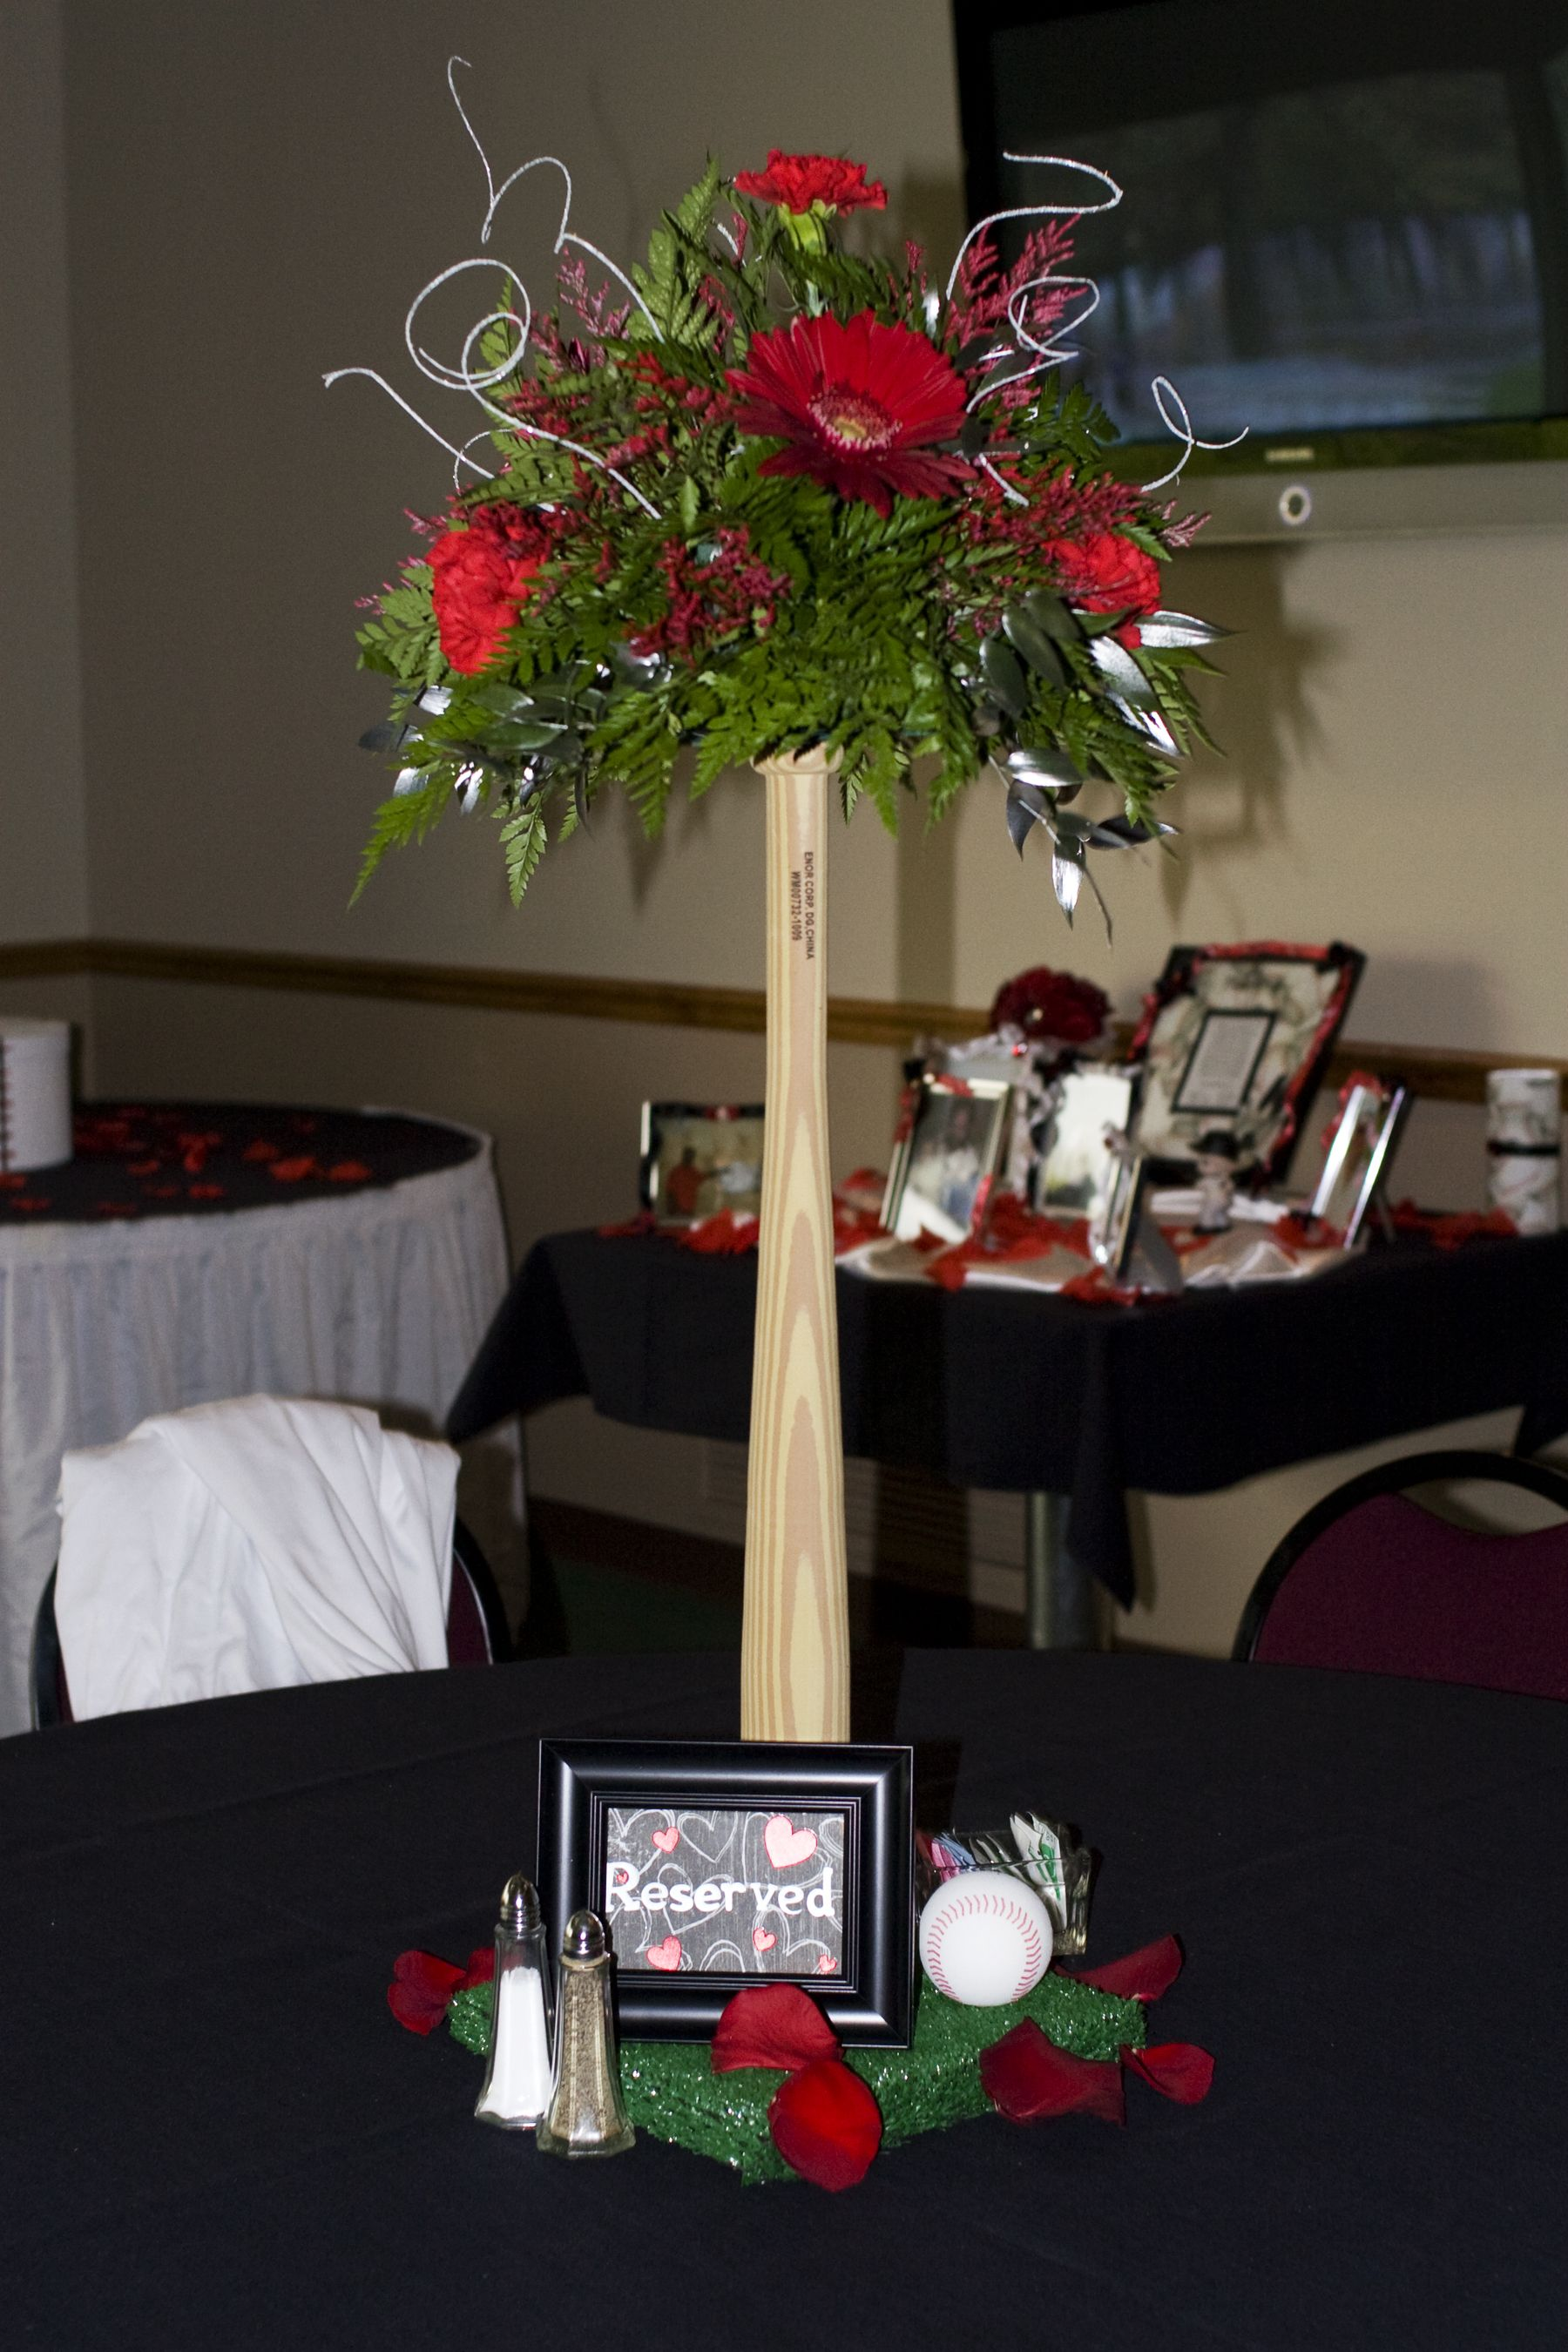 Haha Baseball Wedding Centerpieces Brendan Would Probably Be Ok With Spending Money At Tucci For These